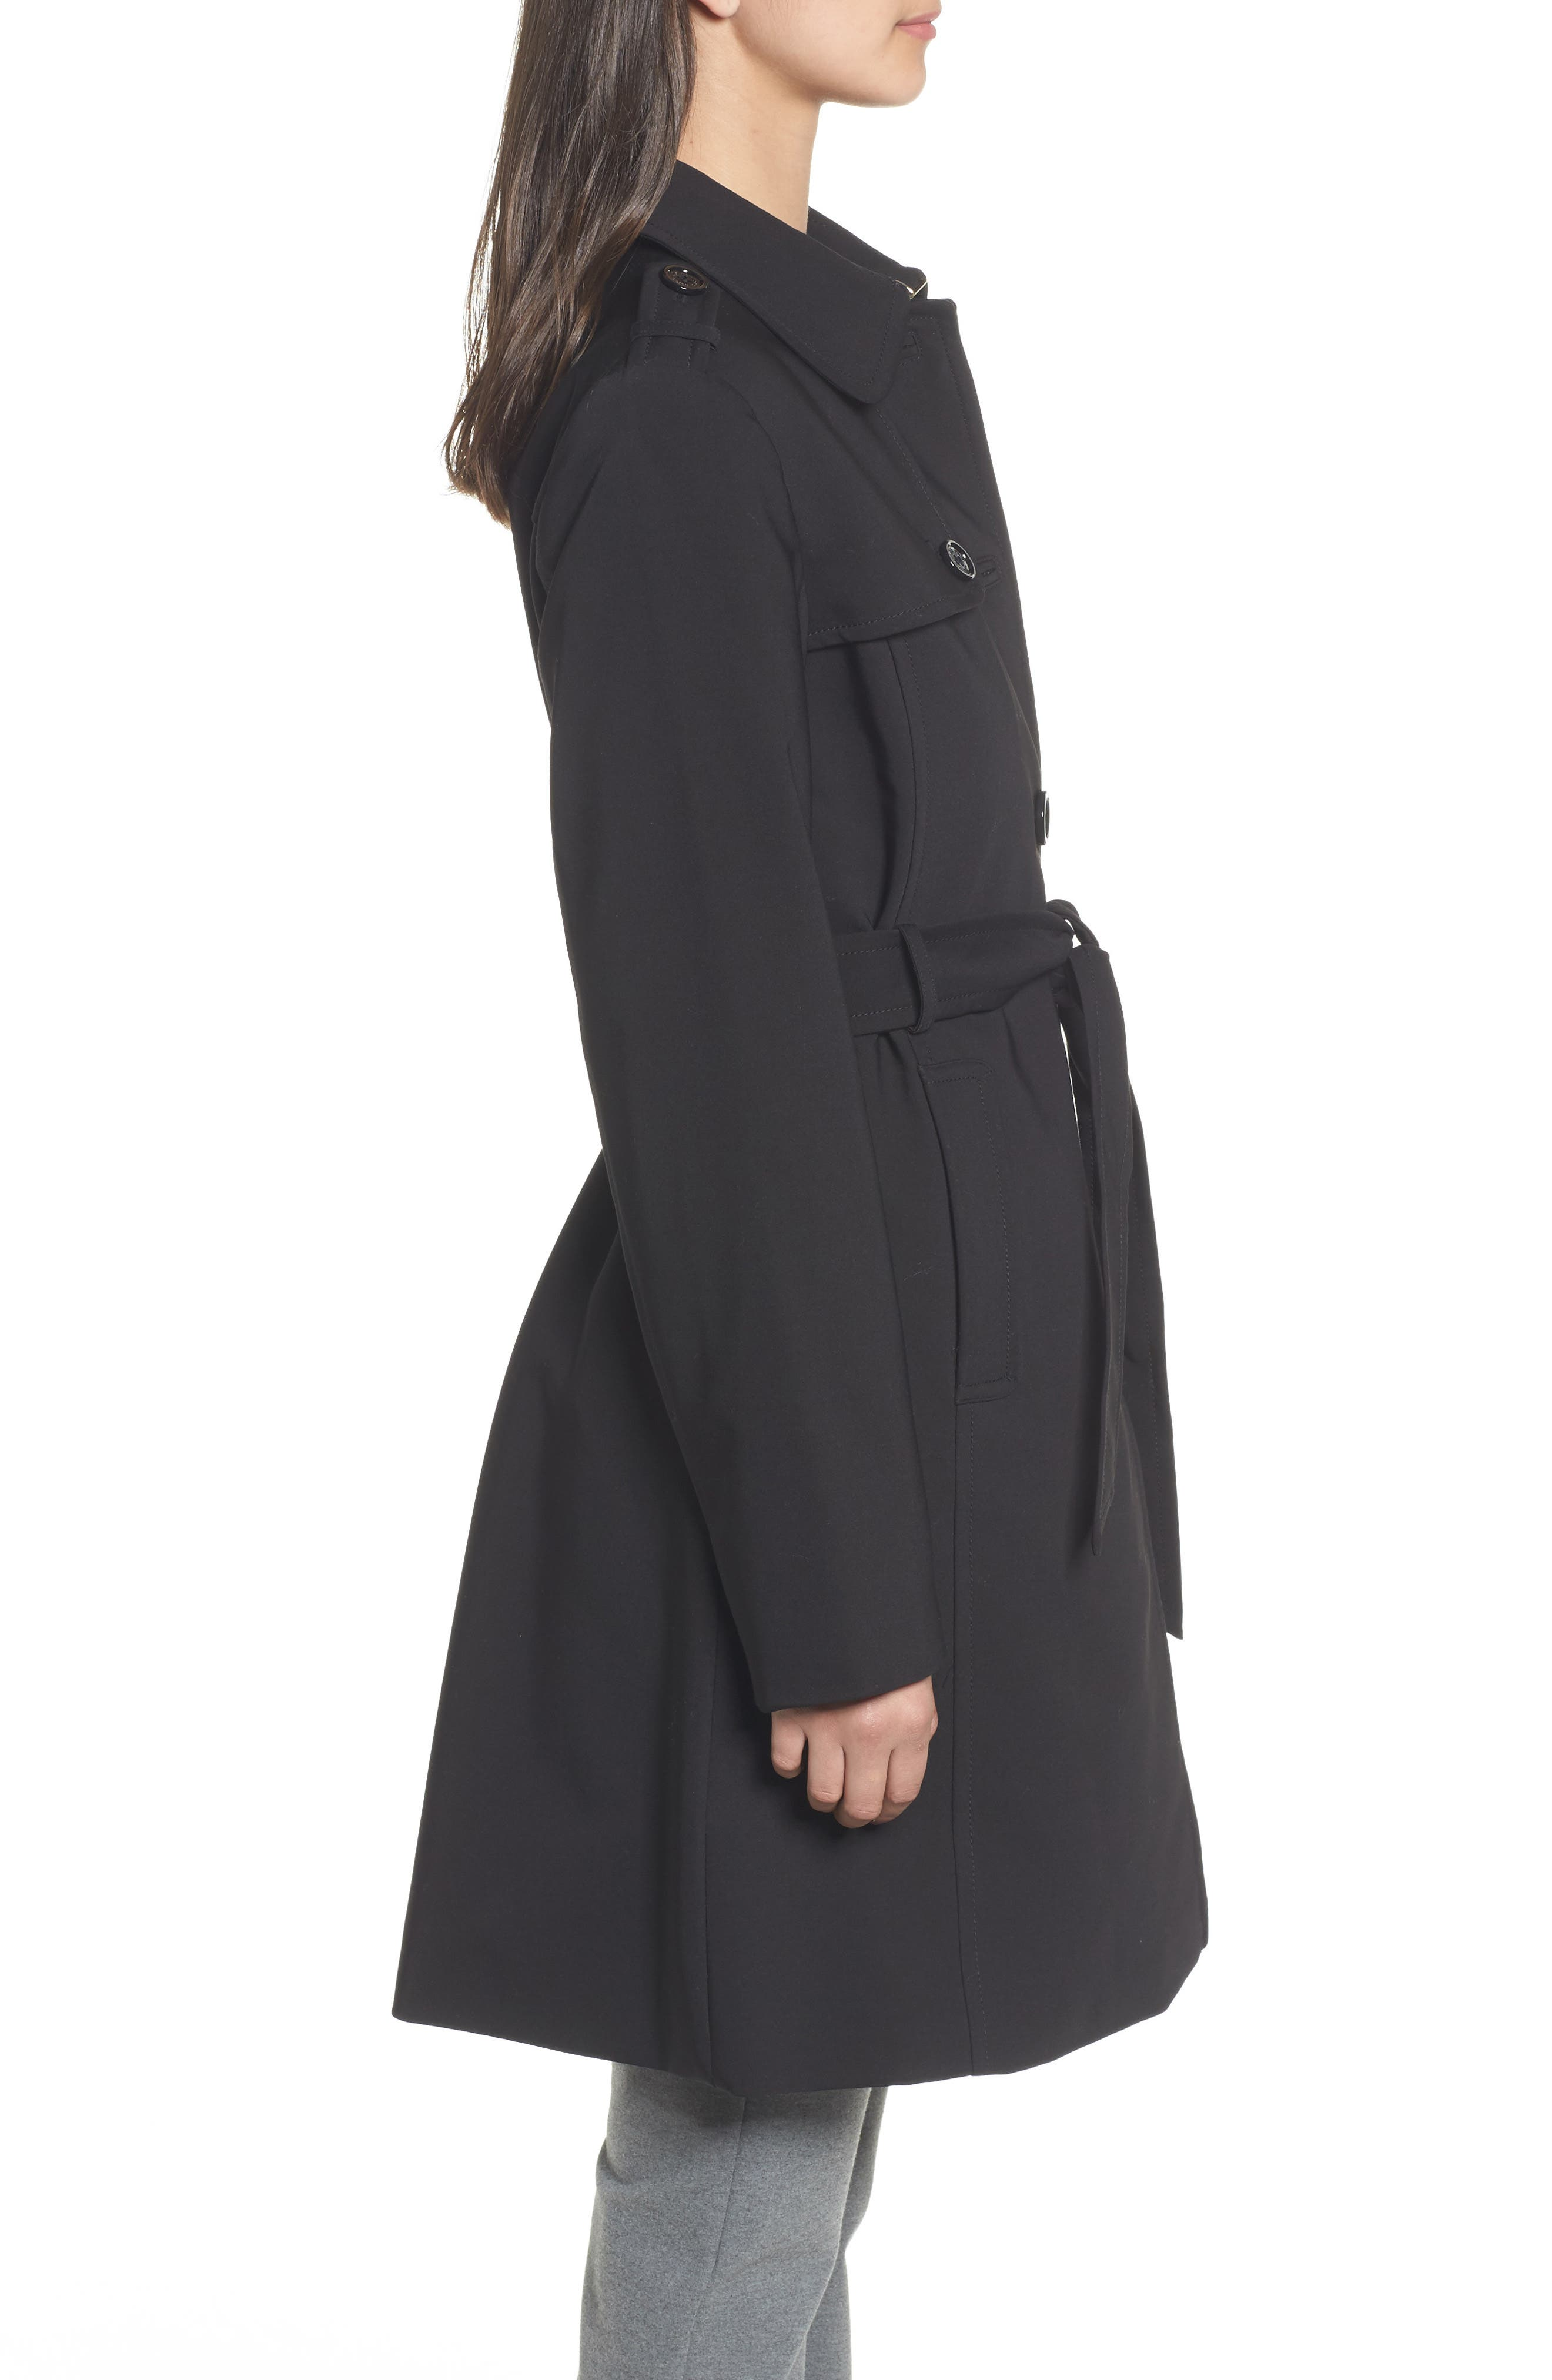 3-in-1 trench coat,                             Alternate thumbnail 3, color,                             001